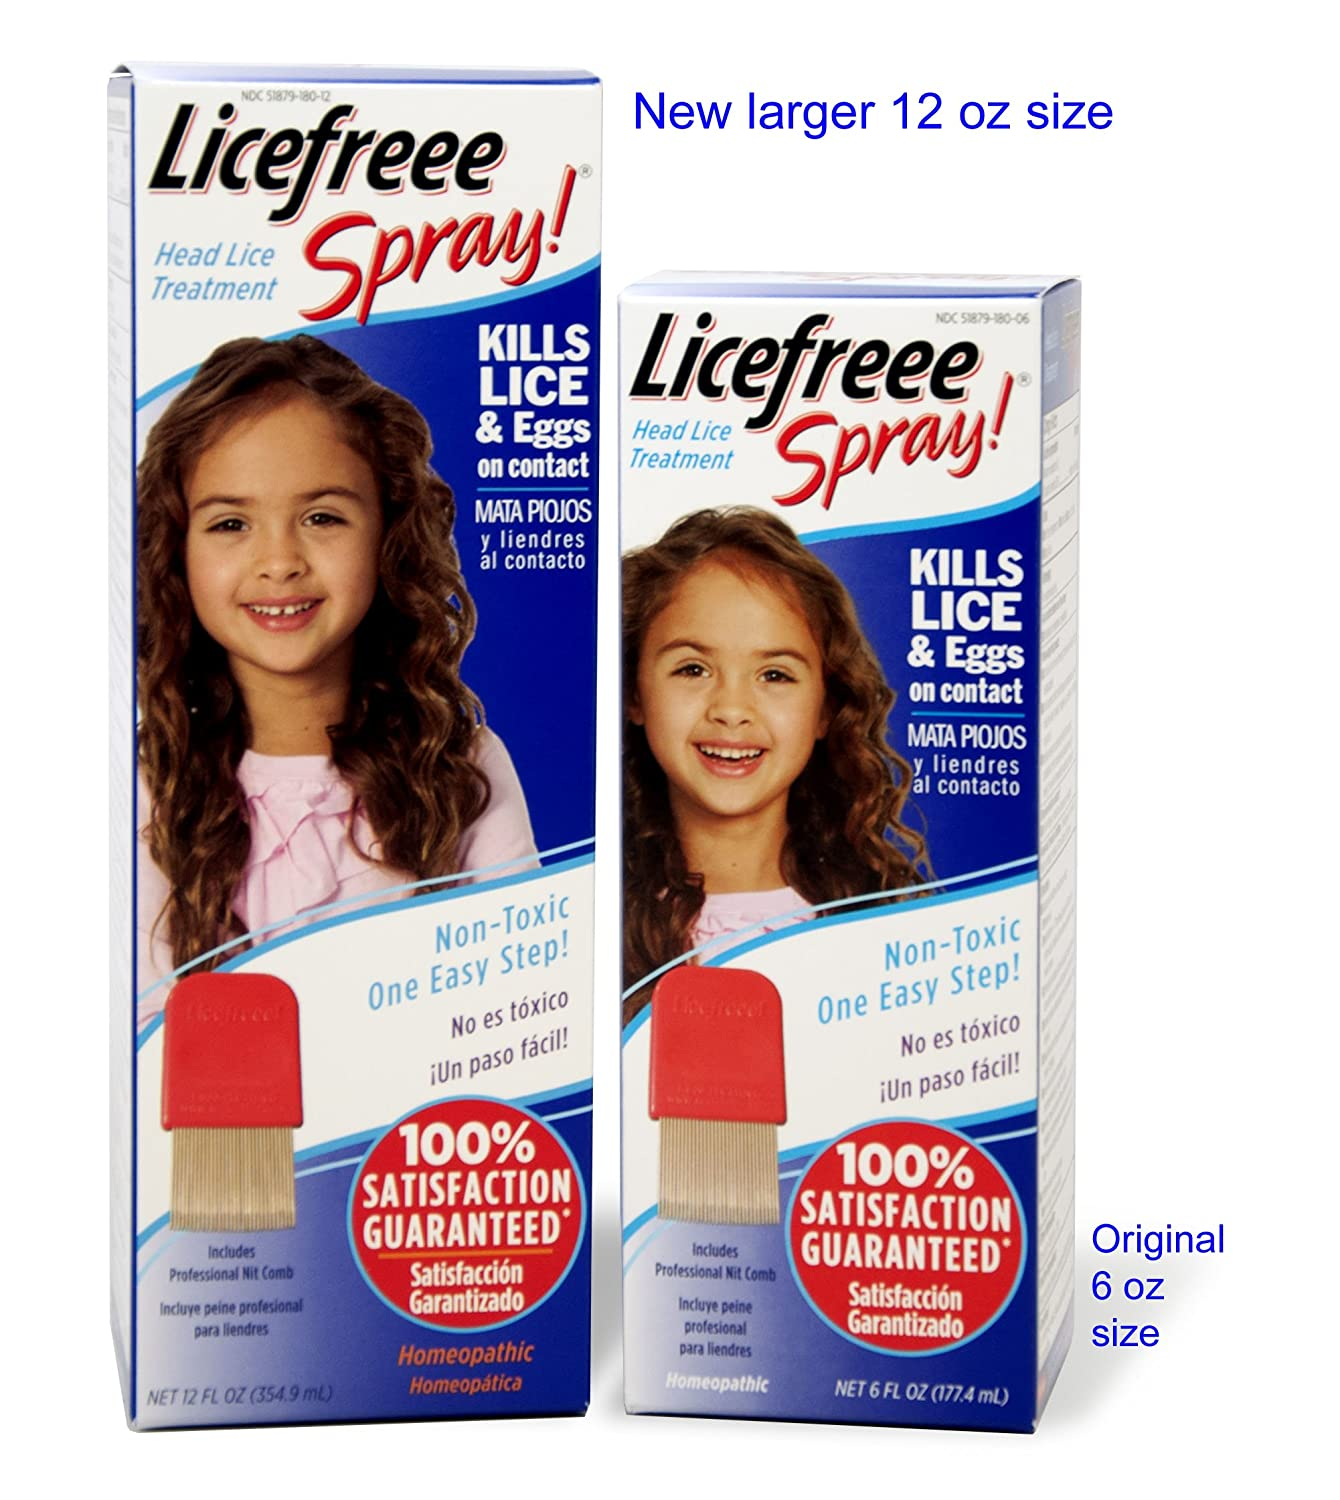 Amazon Licefreee Spray Large Family Size Head Lice Treatment